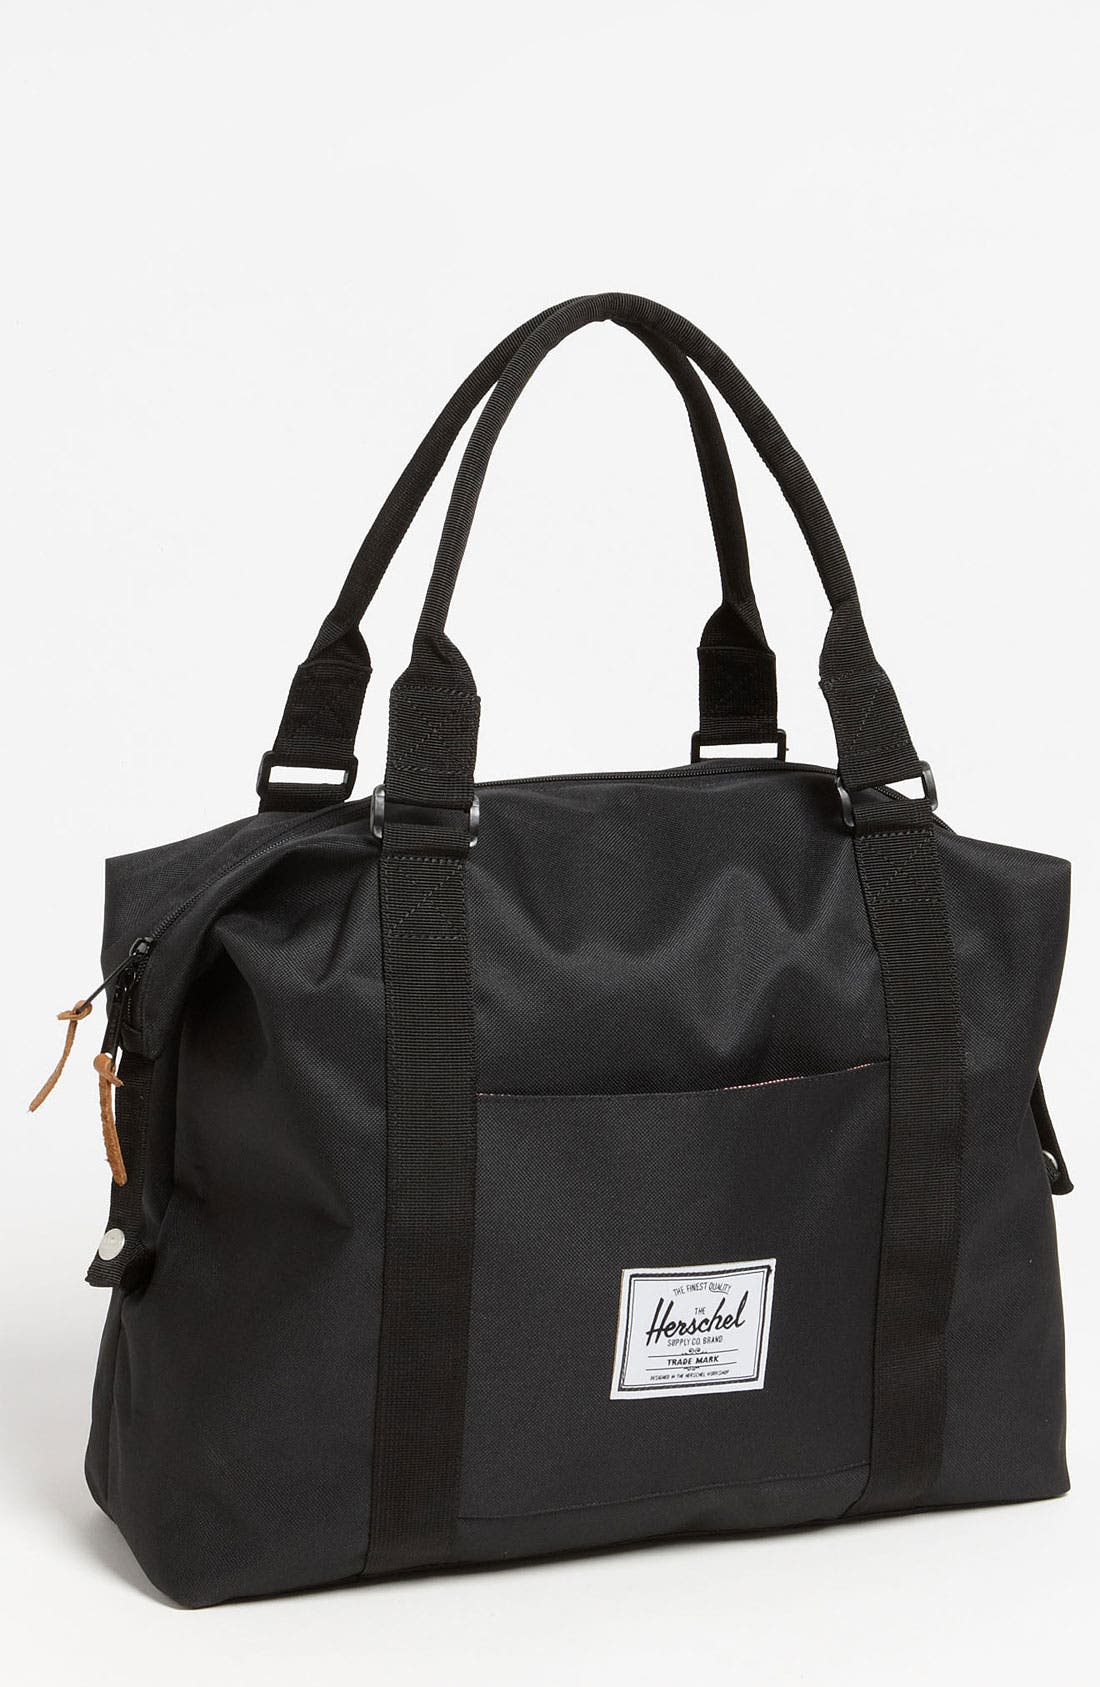 Alternate Image 1 Selected - Herschel Supply Co. 'Strand' Duffel Bag